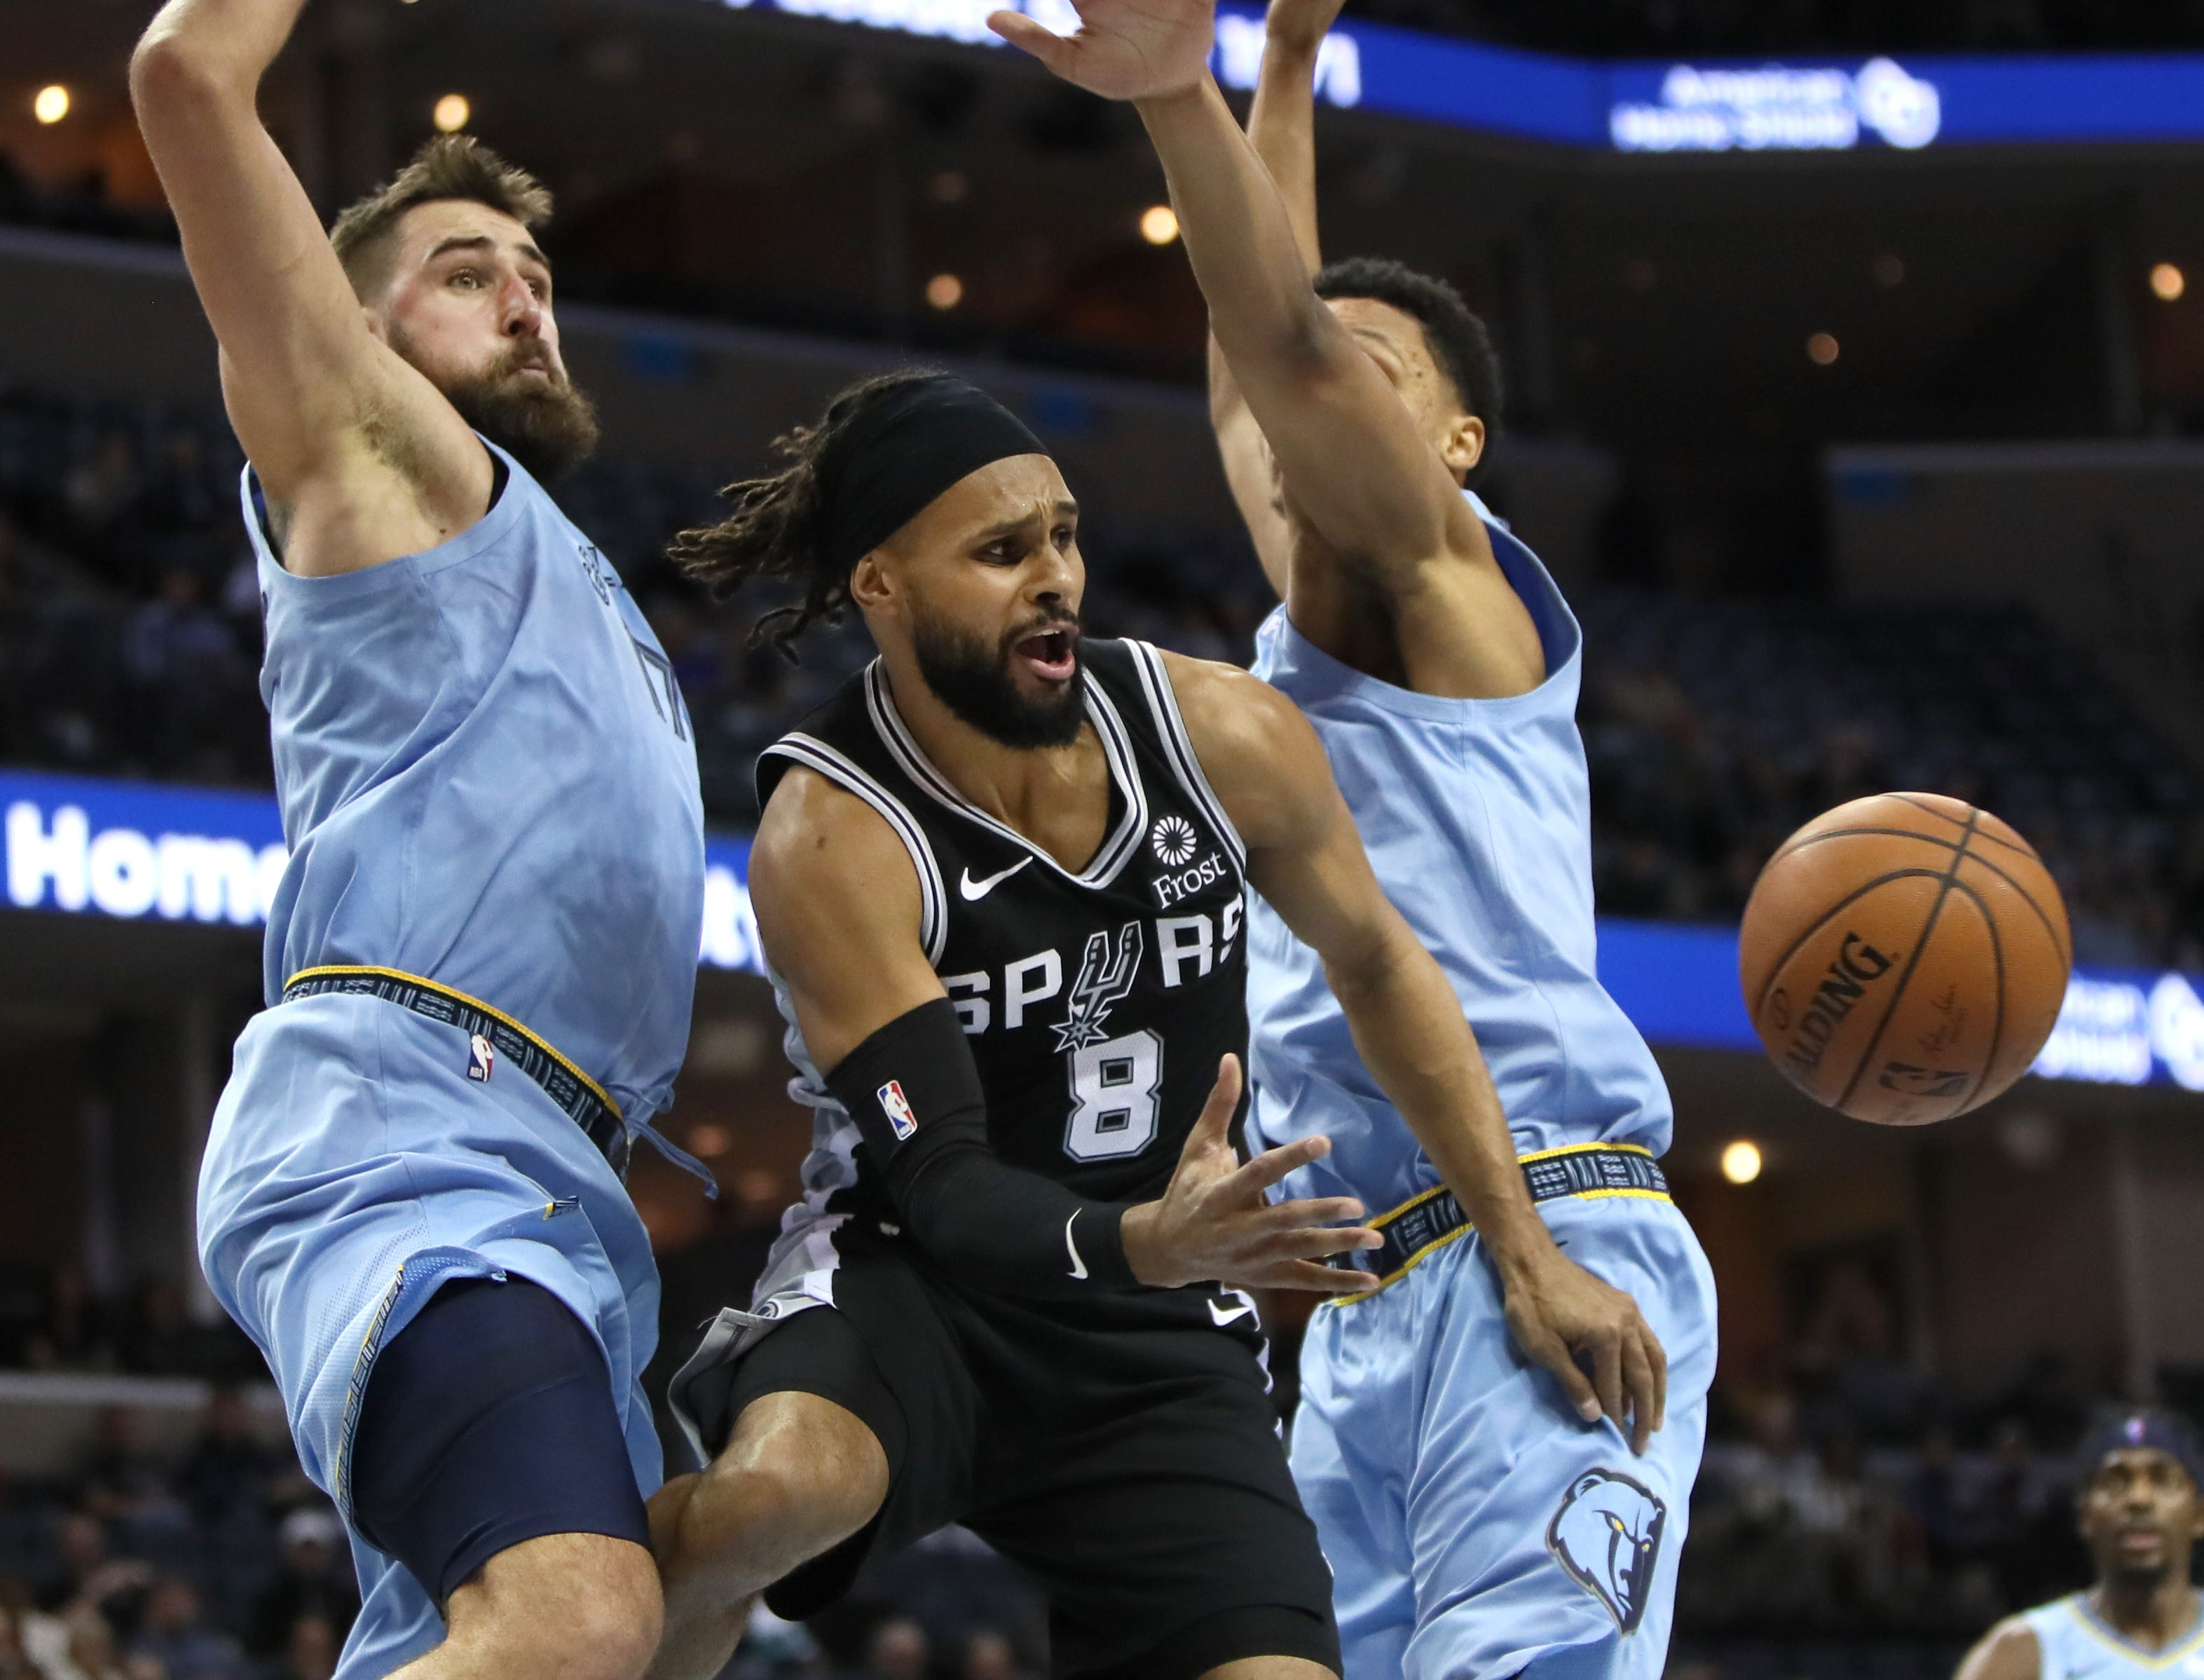 Memphis Grizzlies center Jonas Valanciunas, left, and forward Ivan Rabb defend a pass against San Antonio Spurs guard Patty Mills during their game at the FedExForum on Tuesday, Feb. 12, 2019.